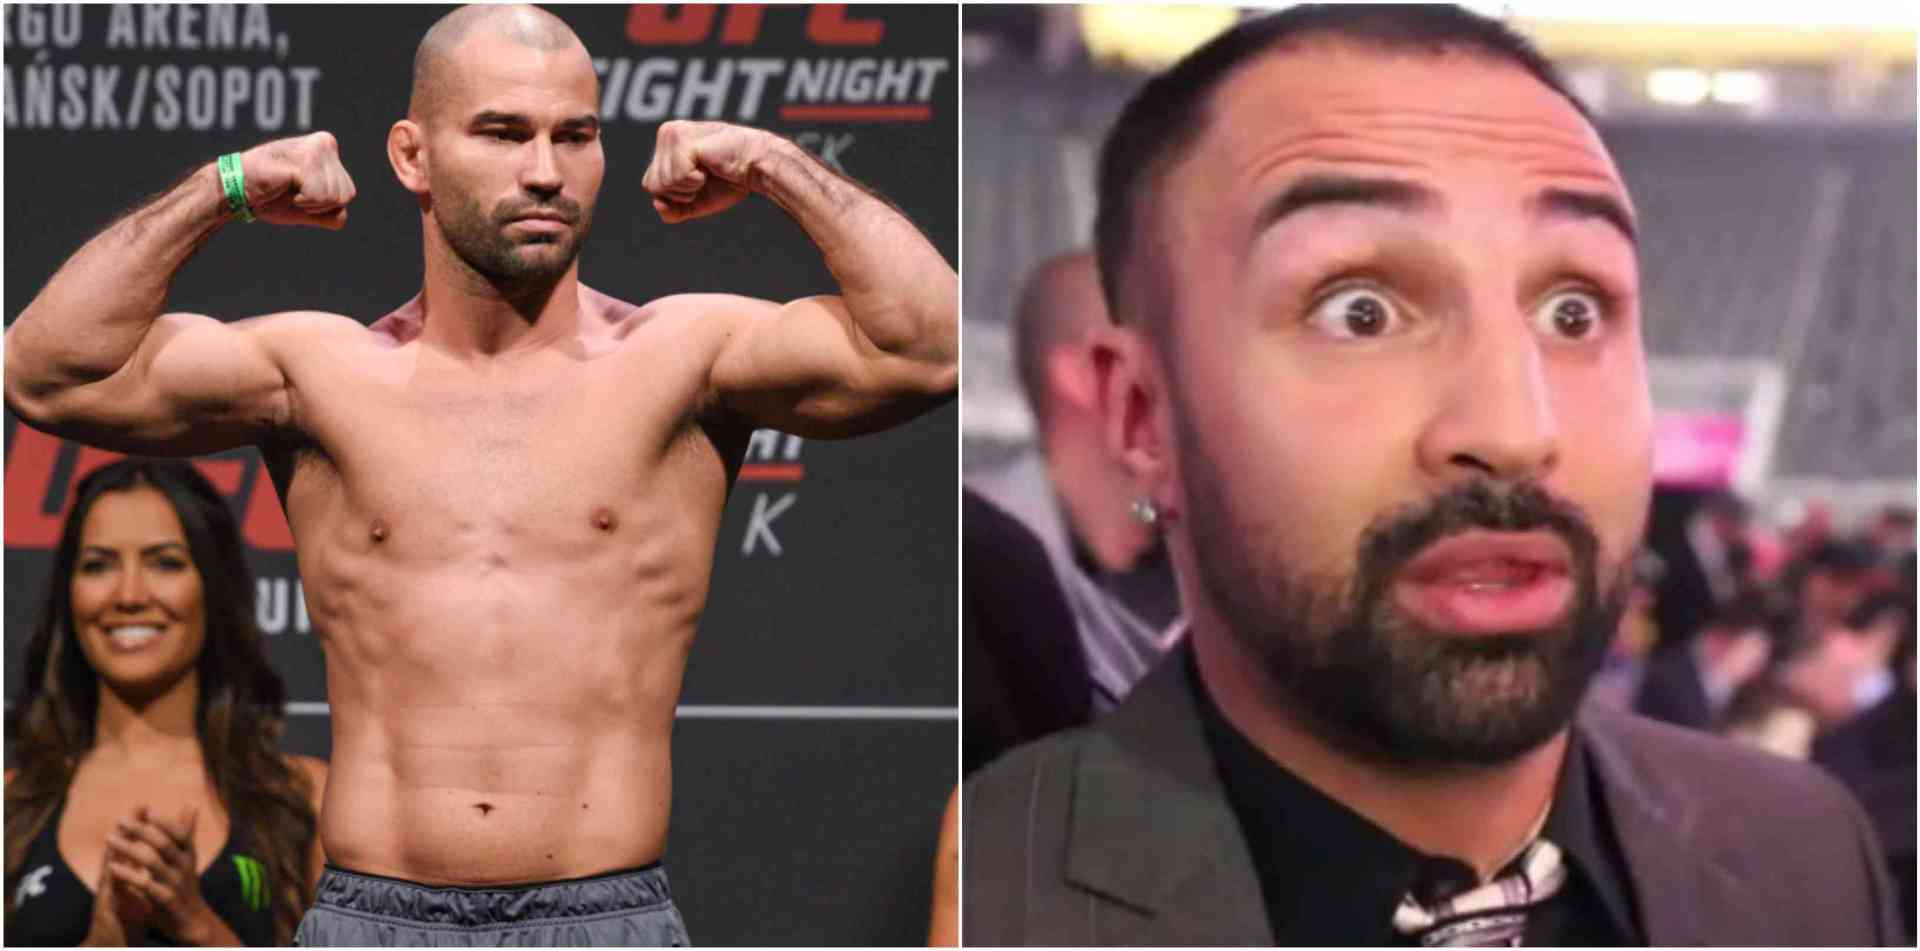 Former Boxing champion Paulie Malignaggi expected to fight Artem Lobov on Bare Knuckle FC - Artem